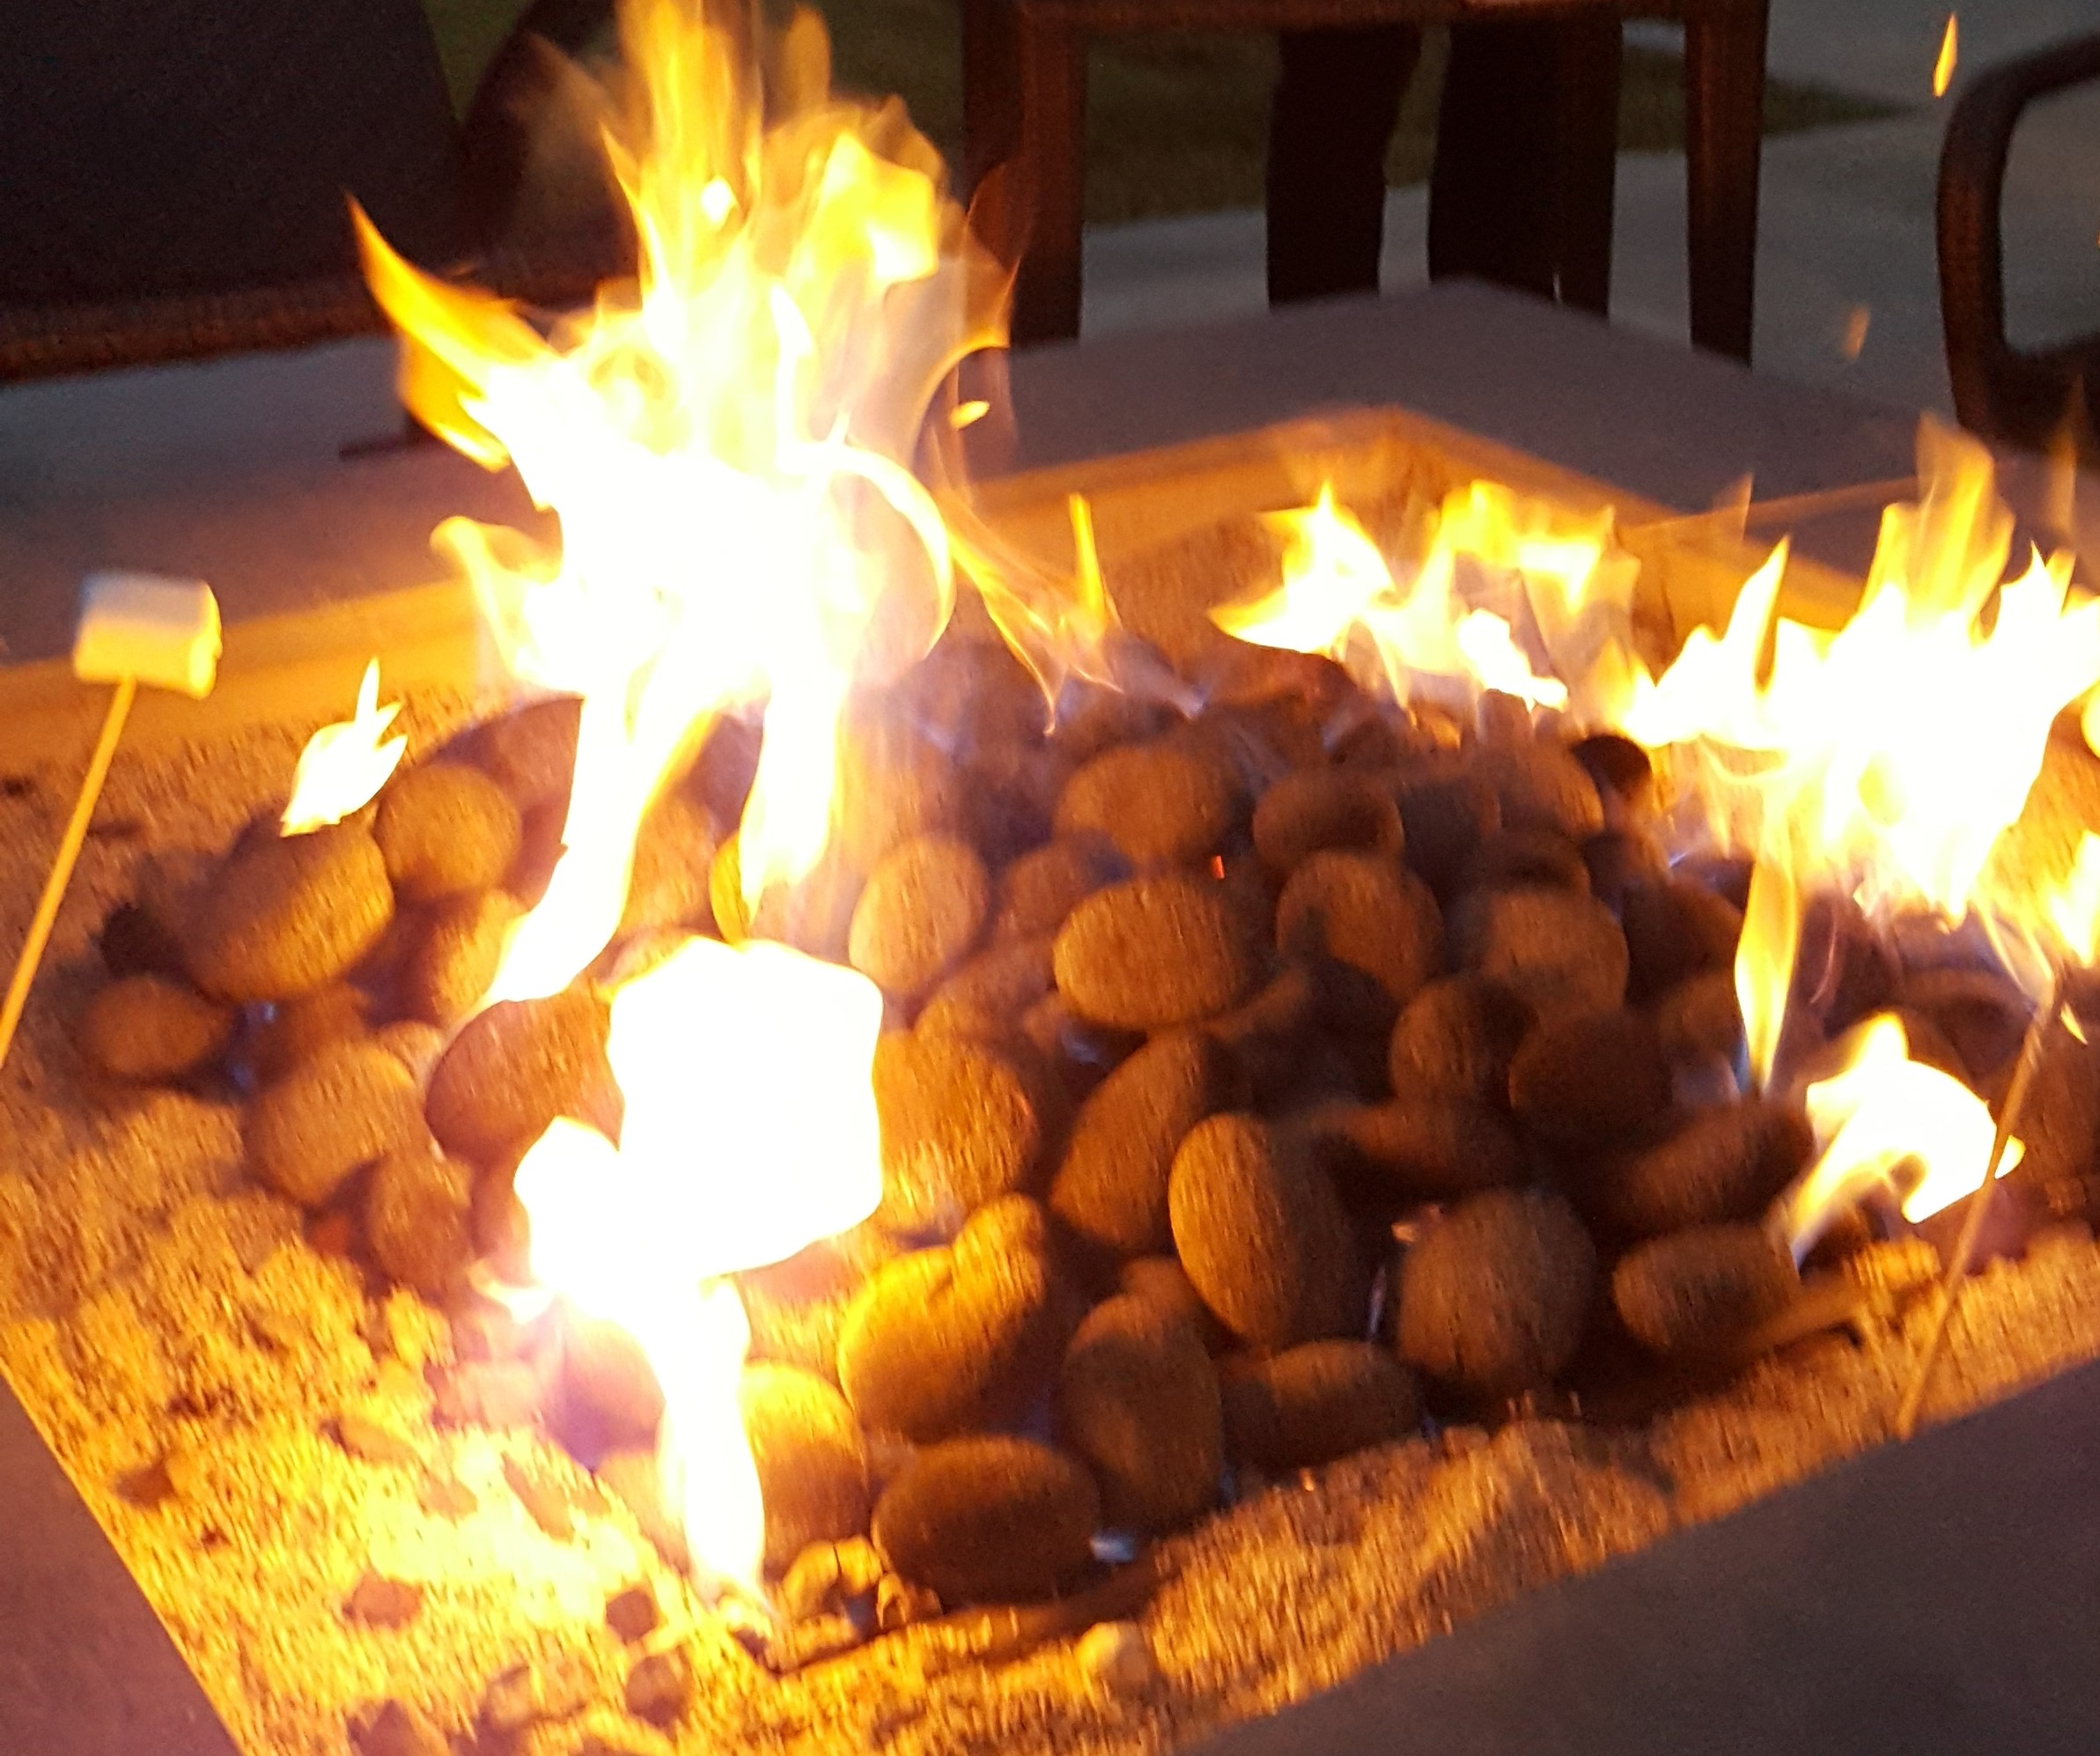 Carefully planned work schedules leave time for family gatherings like s'mores around the firepit.